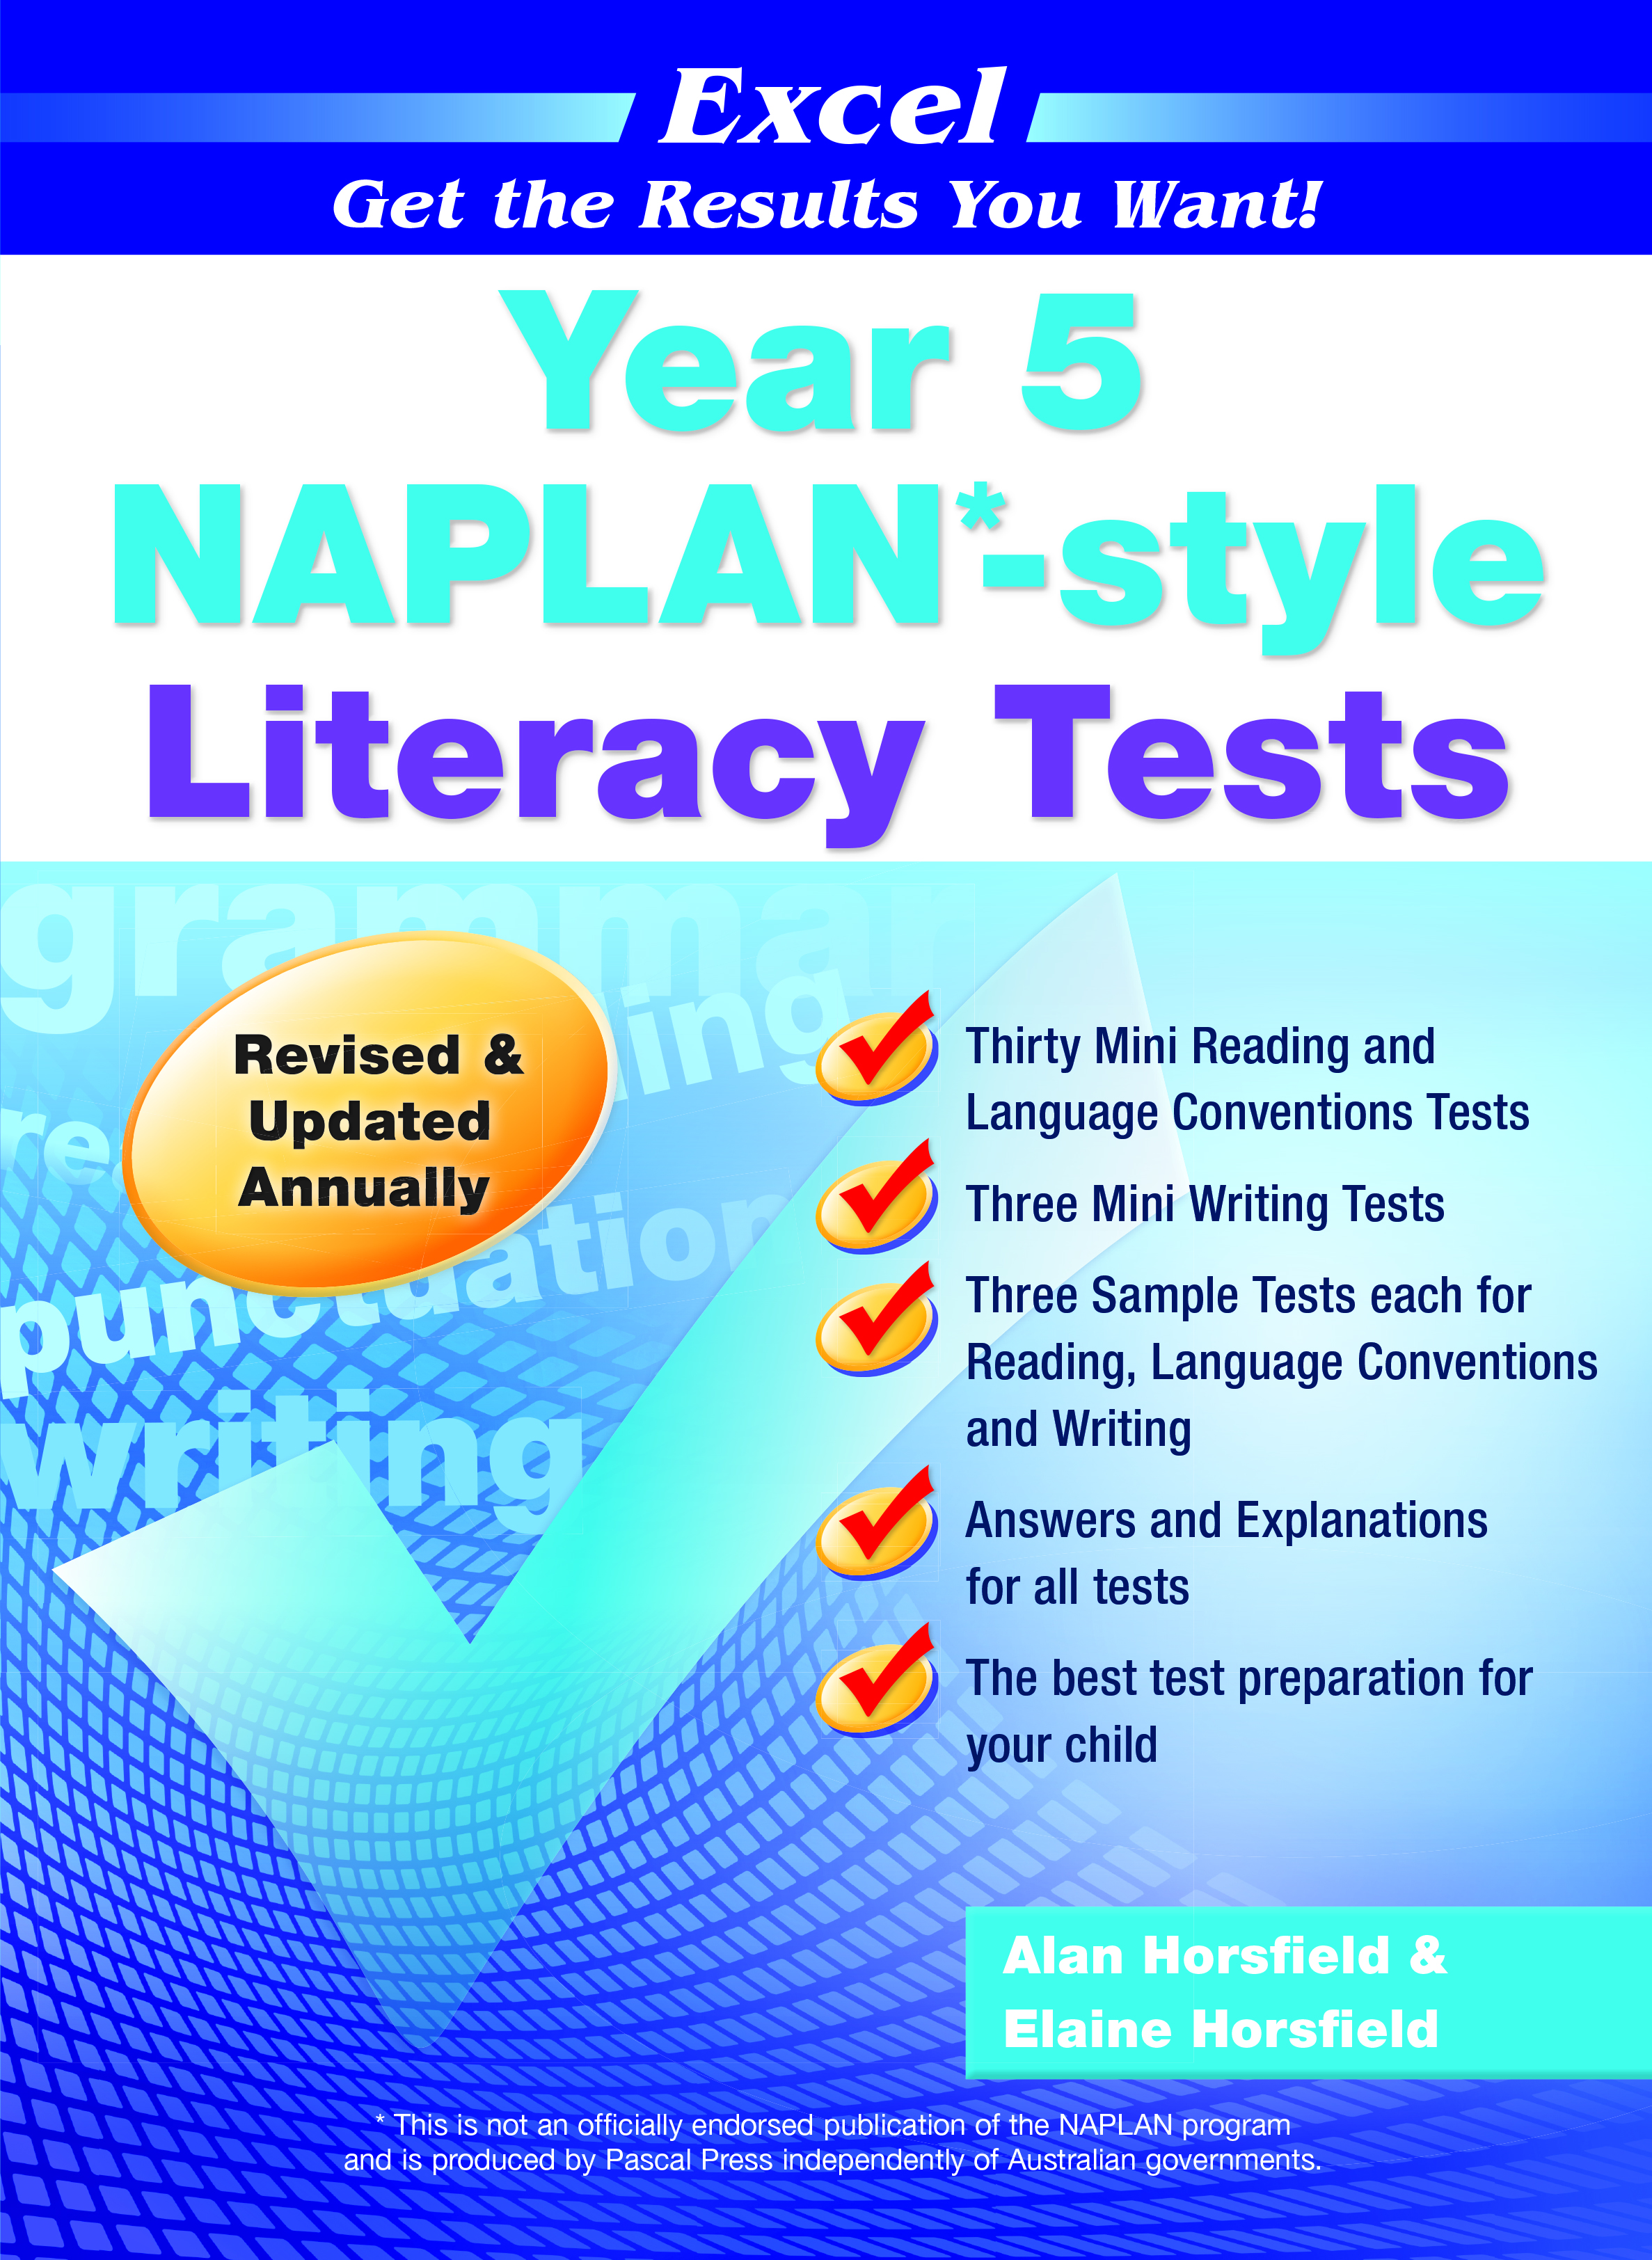 Excel NAPLAN*-style Literacy Tests Year 5